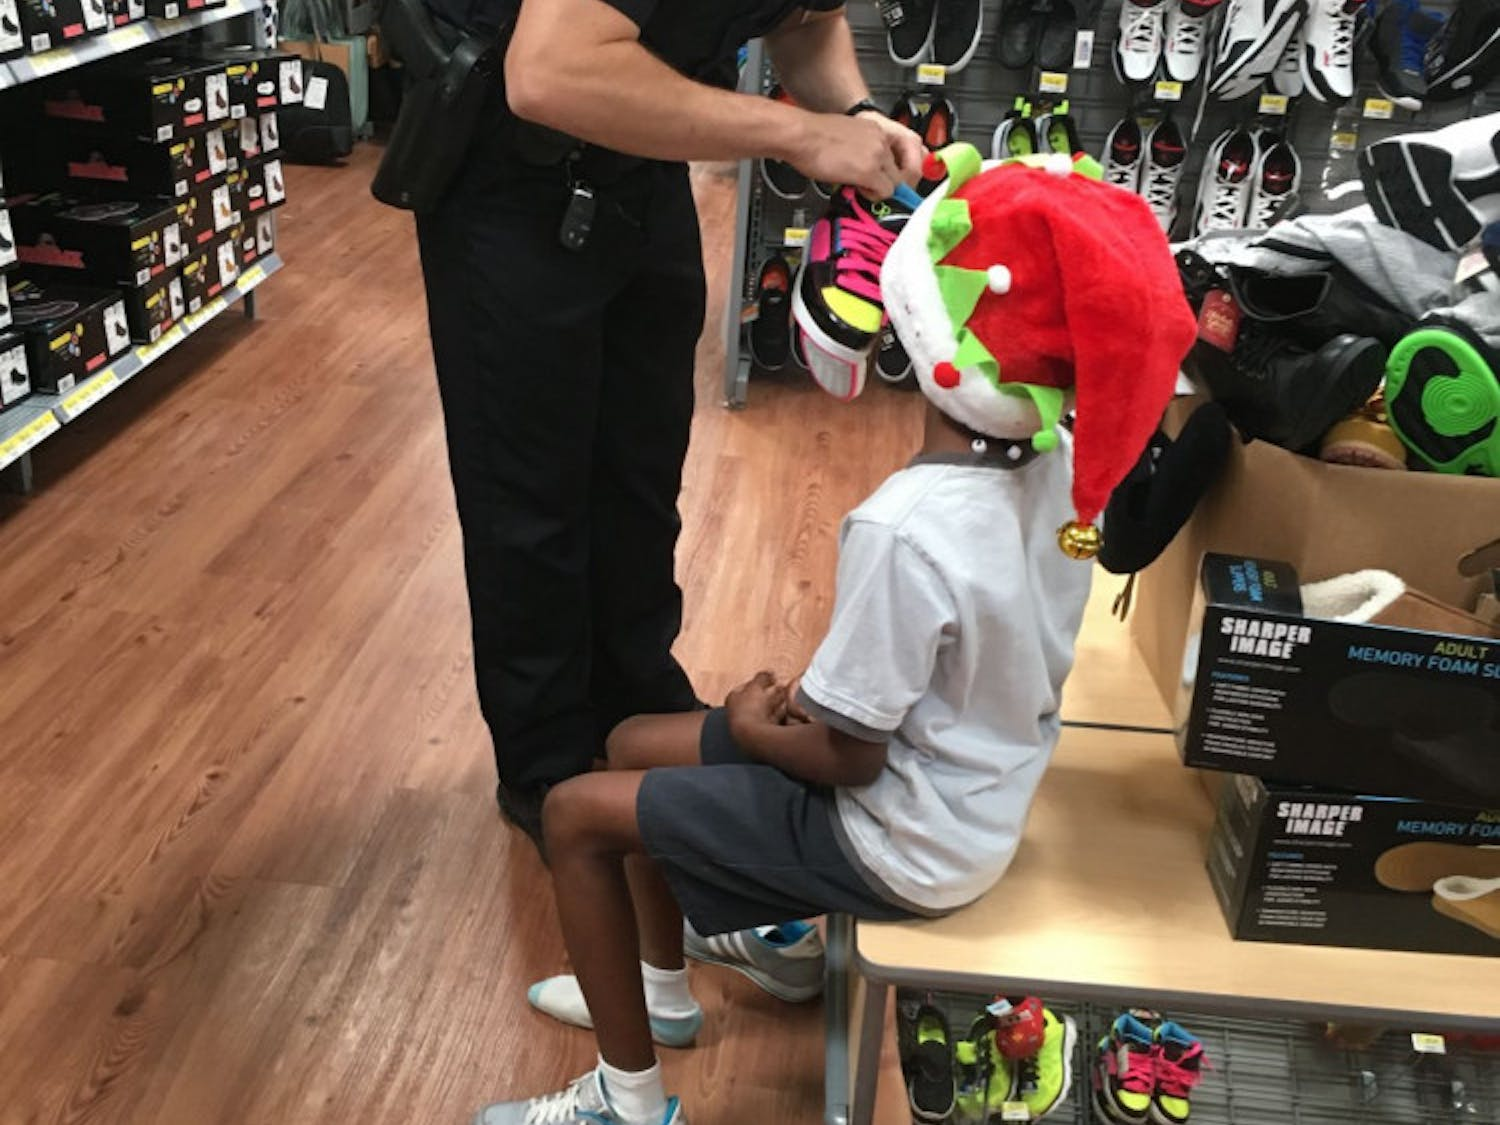 Ryan Quinn, Gainesville Police Department, helps 9-year-old Krystal Smith pick out a new pair of shoes.